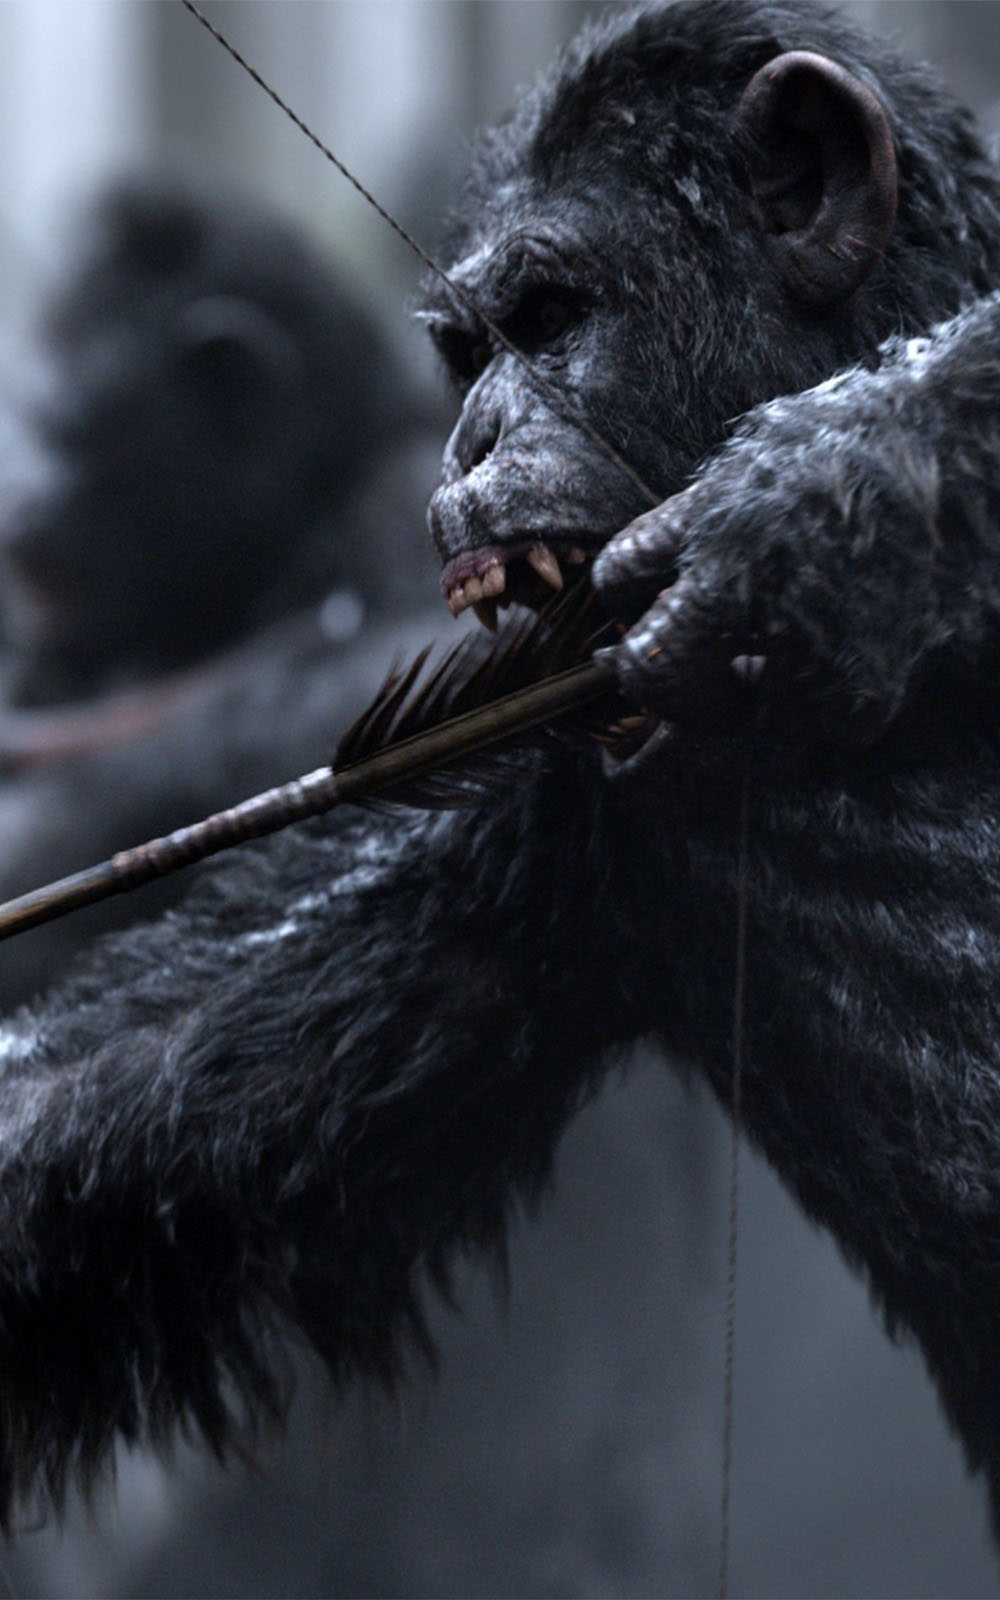 War For The Planet Of The Apes 2017 Movie Download Free Hd Mobile Wallpapers